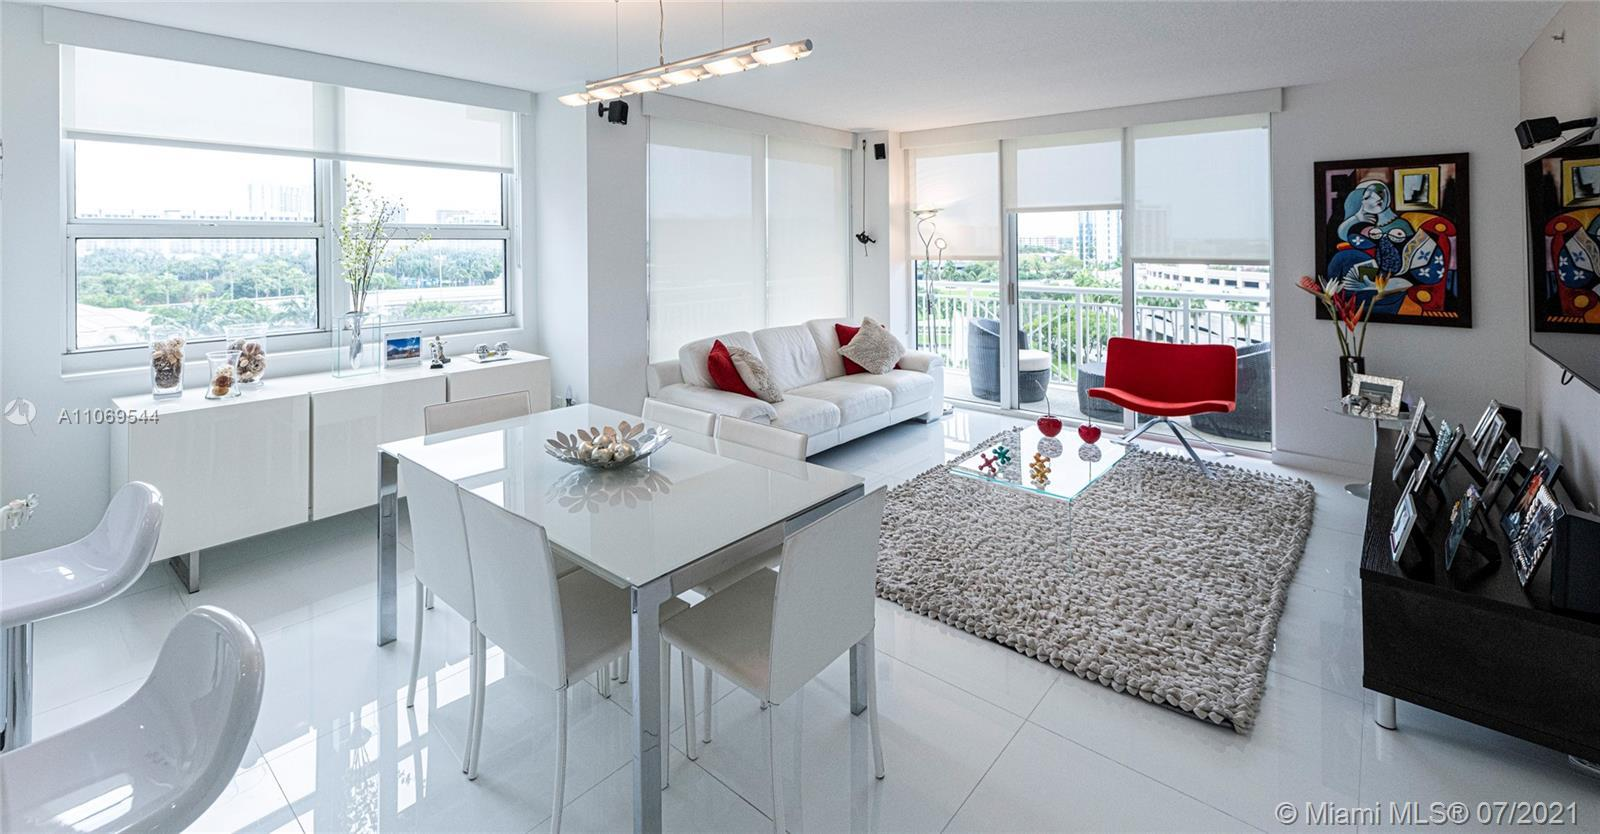 Spectacular unit, completely remodeled, NEW Italian kitchen, stainless steel appliances & white quar